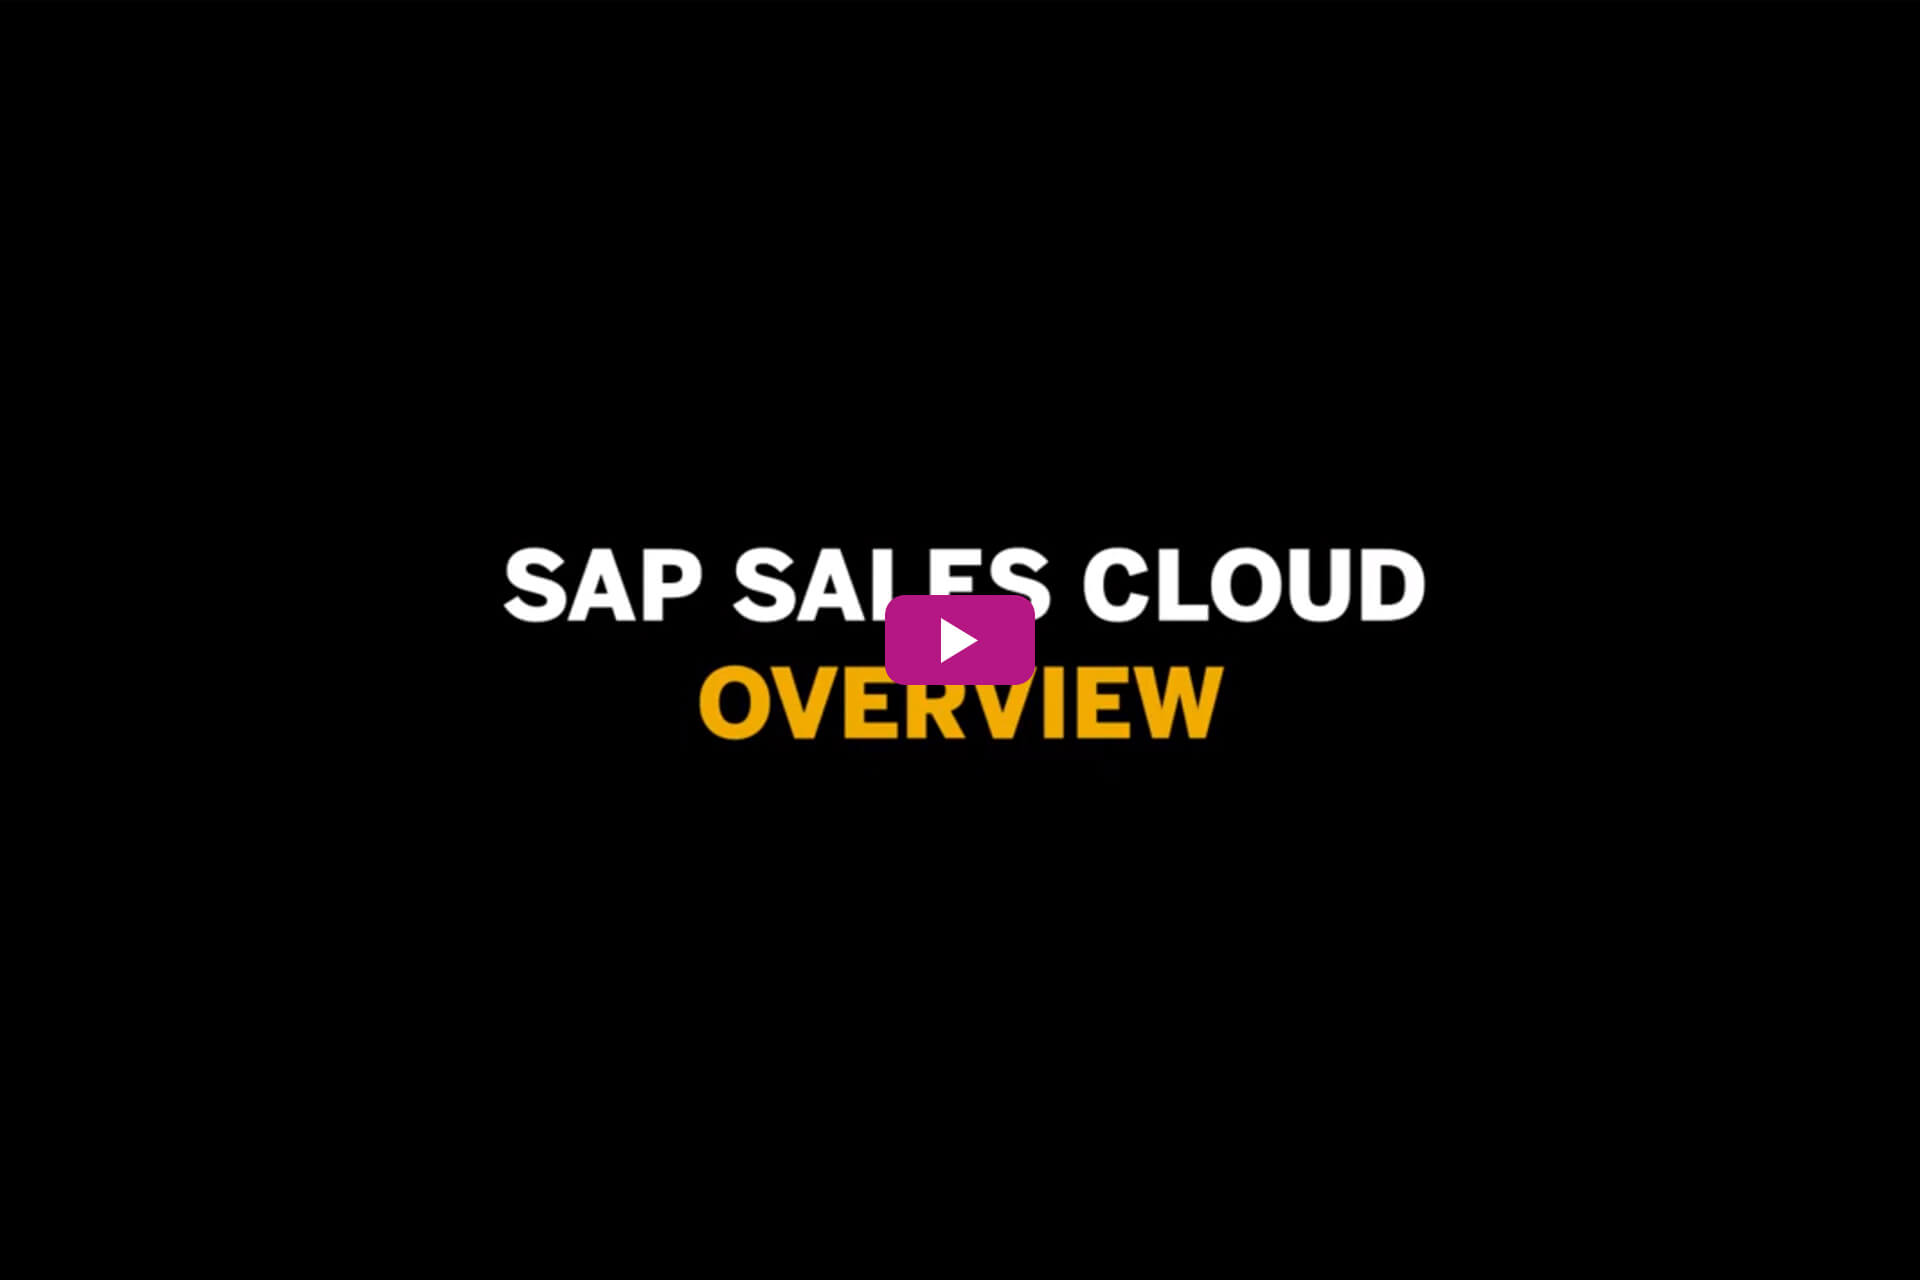 Vorschaubild zum Video SAP Sales Cloud Overview